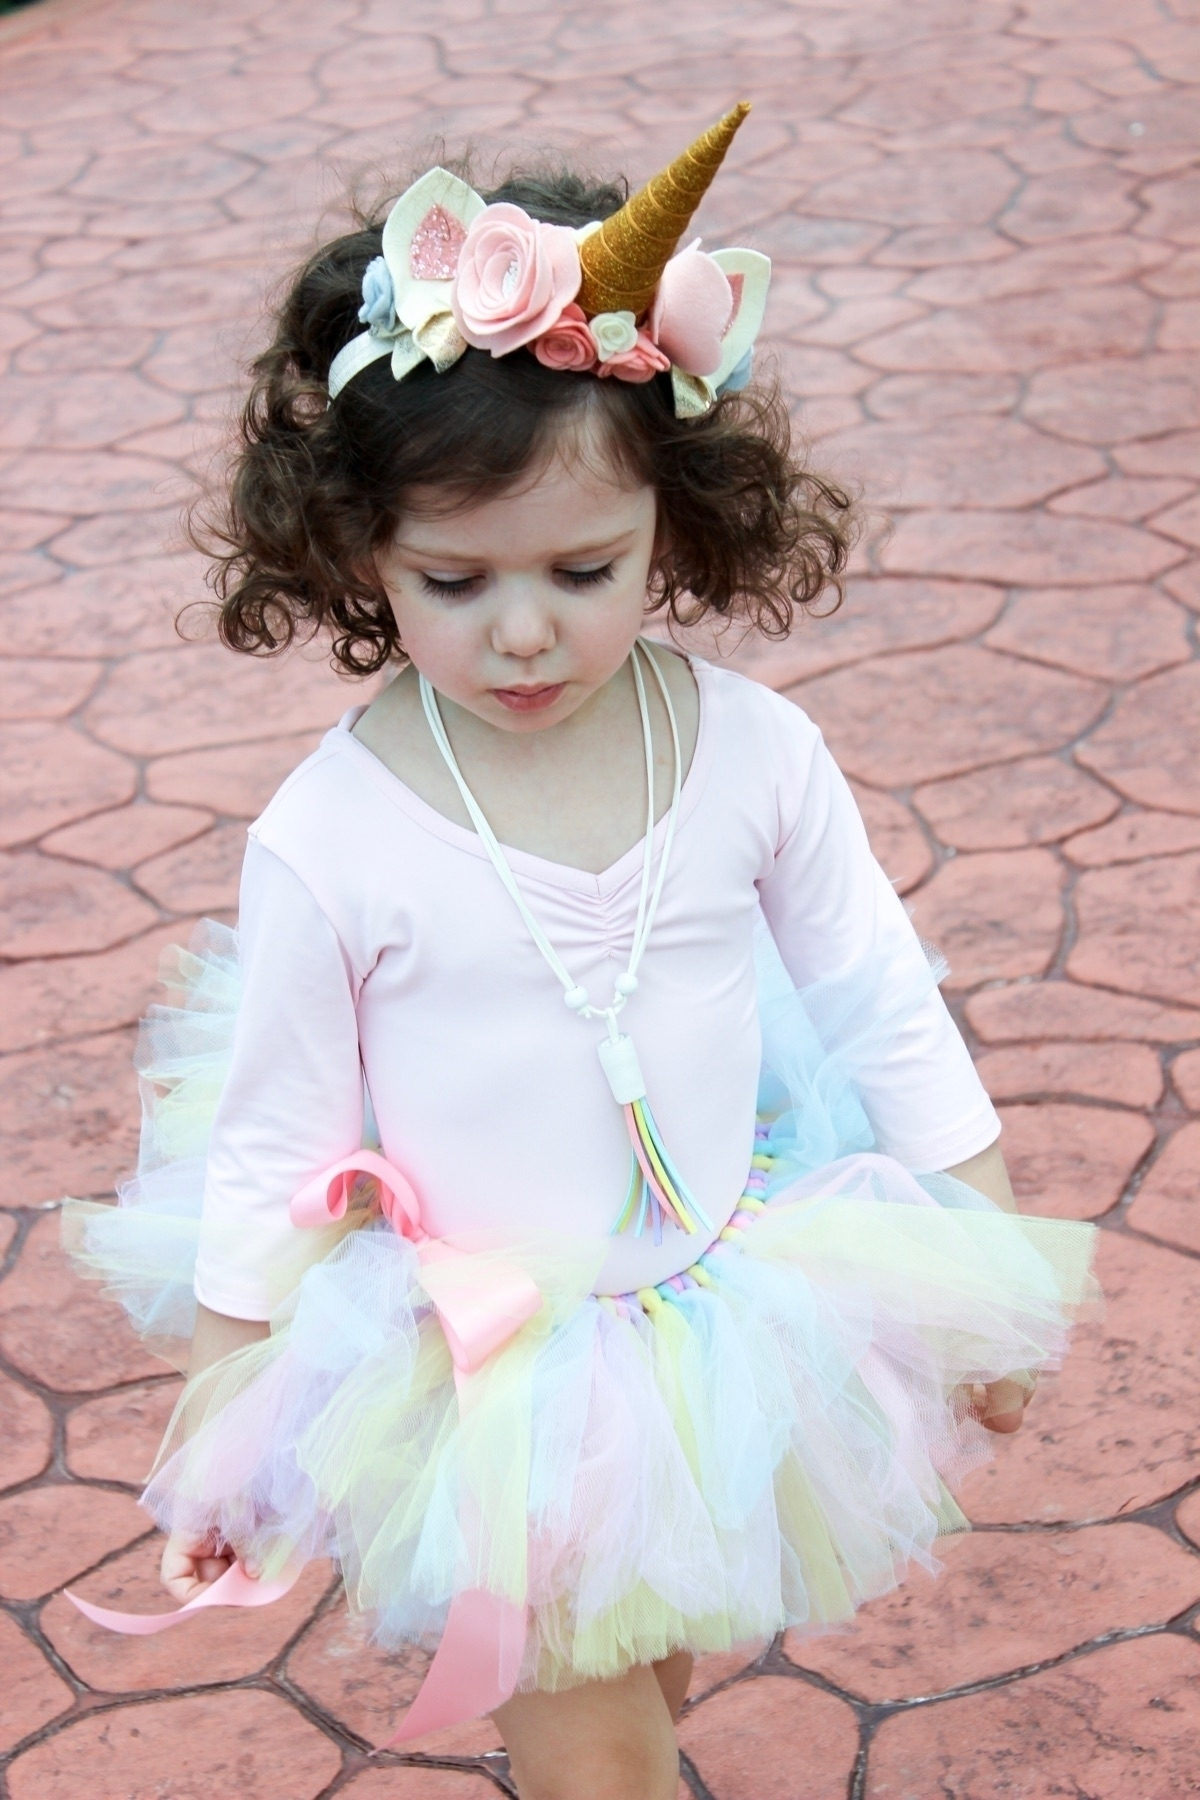 Unicorn headband Tutu BEAUTIFUL - adventures_of_evie | ello